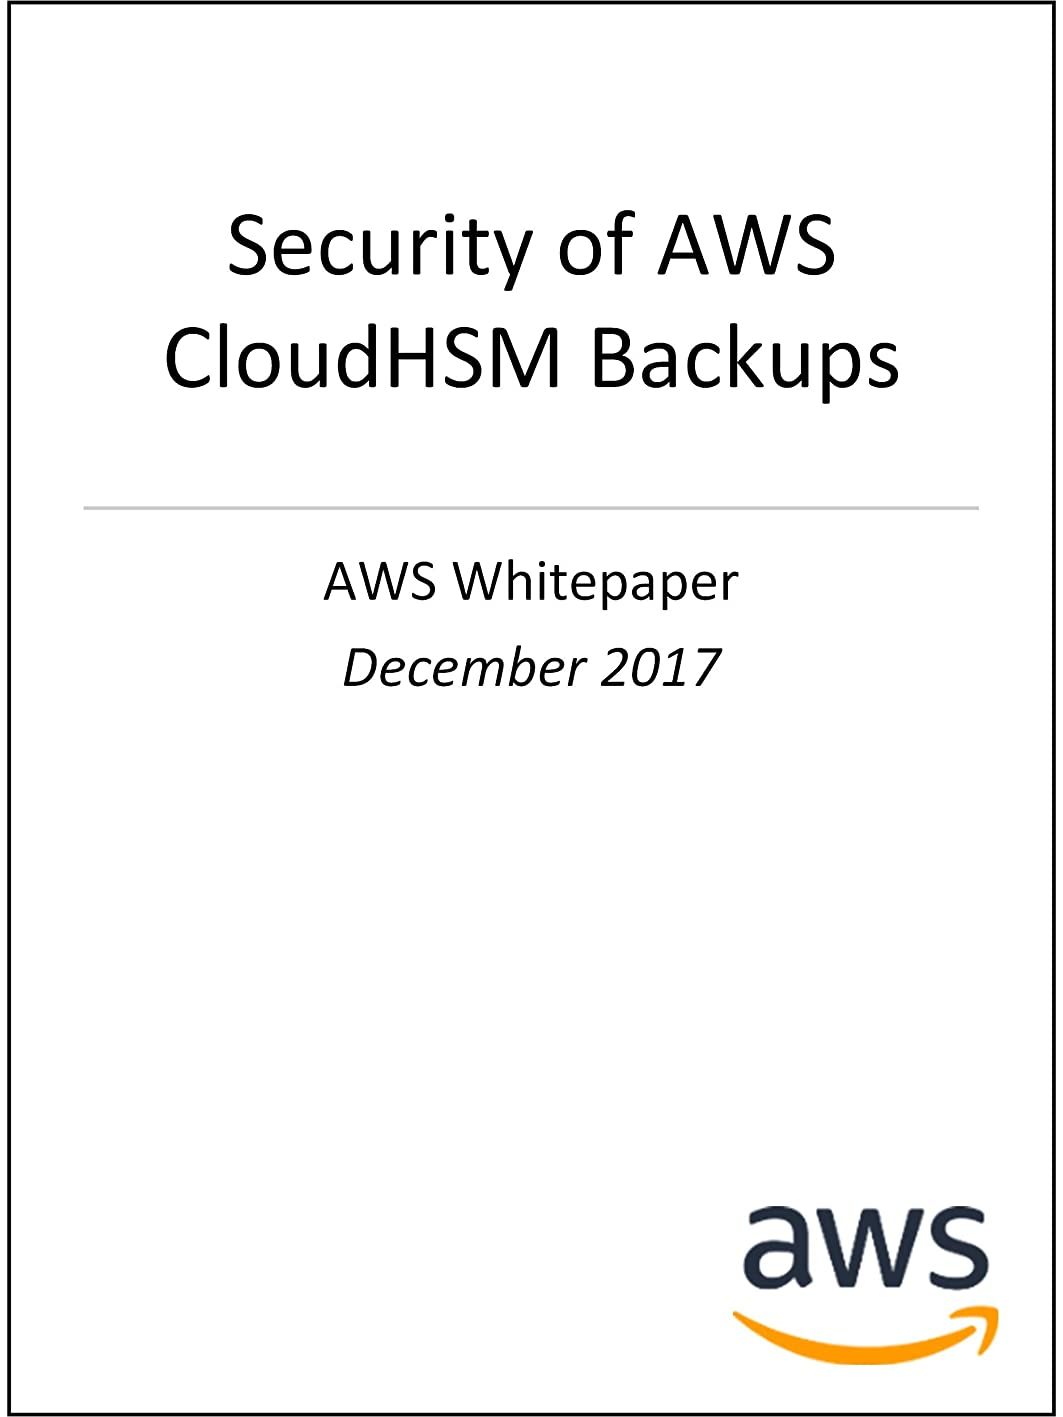 幼児誘惑する近傍Security of AWS CloudHSM Backups (AWS Whitepaper) (English Edition)